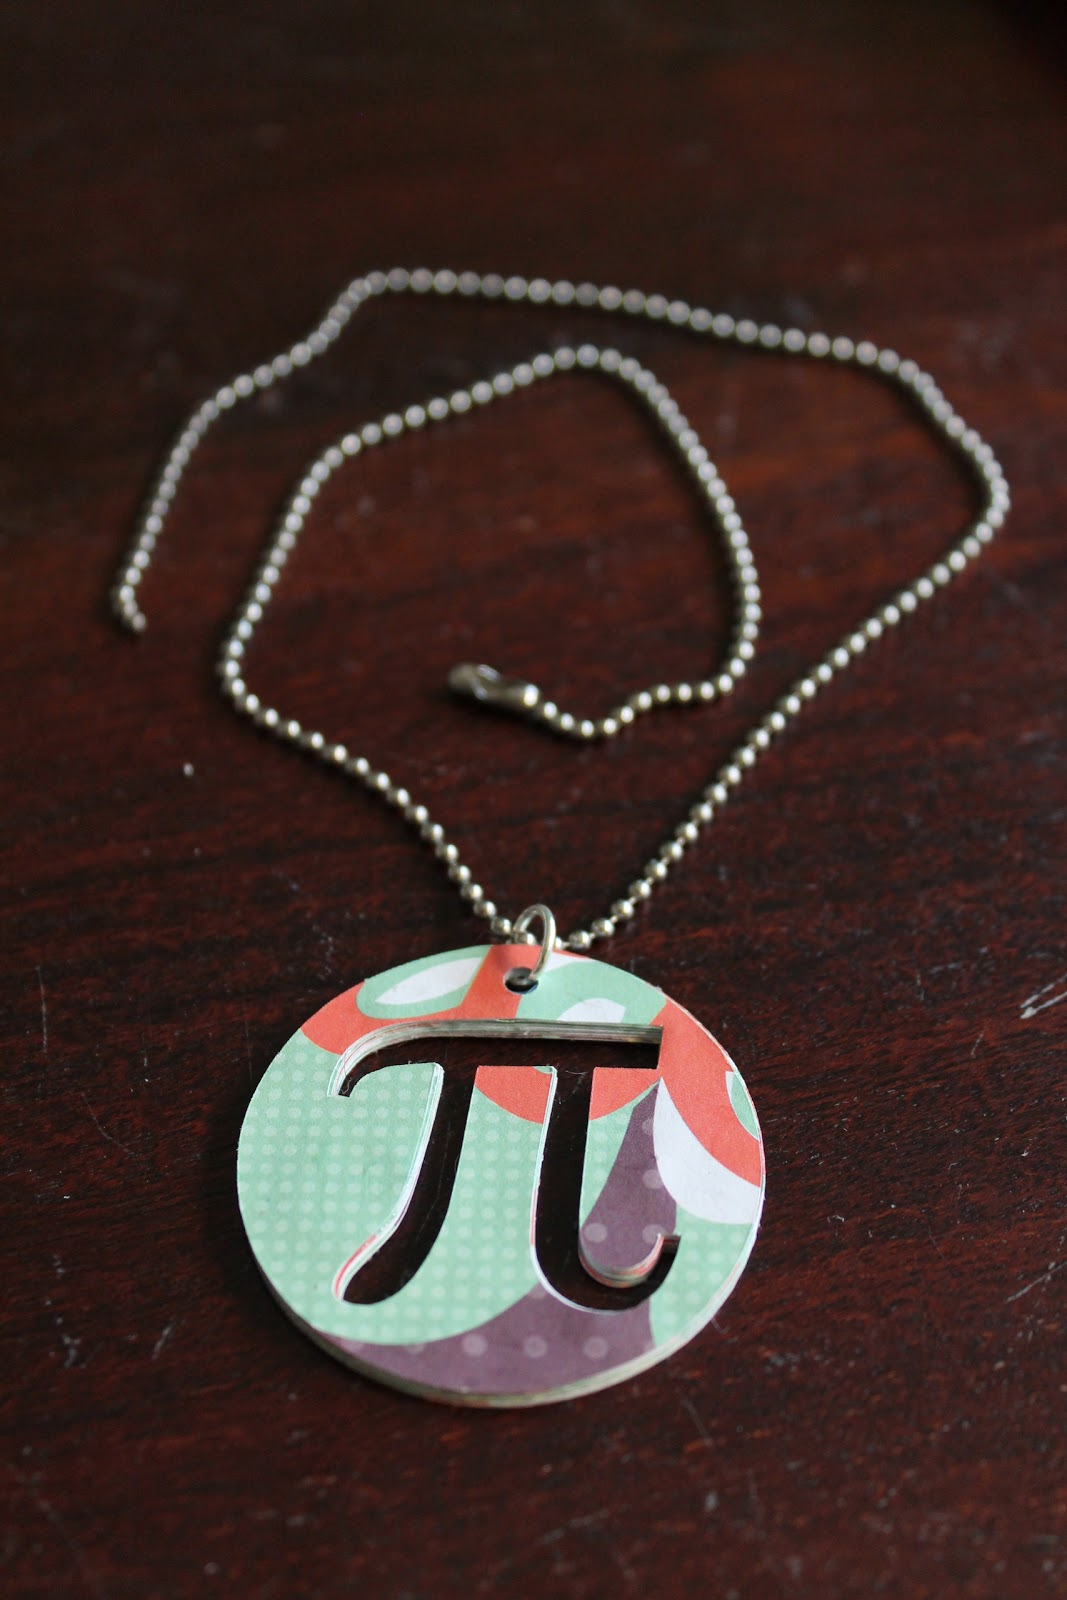 Ideas to live the diy life tutorial paper pendants before you say what the heck let me tell you two important things about me i am a math teacher beyond that fact pi day is my favorite day of the aloadofball Gallery